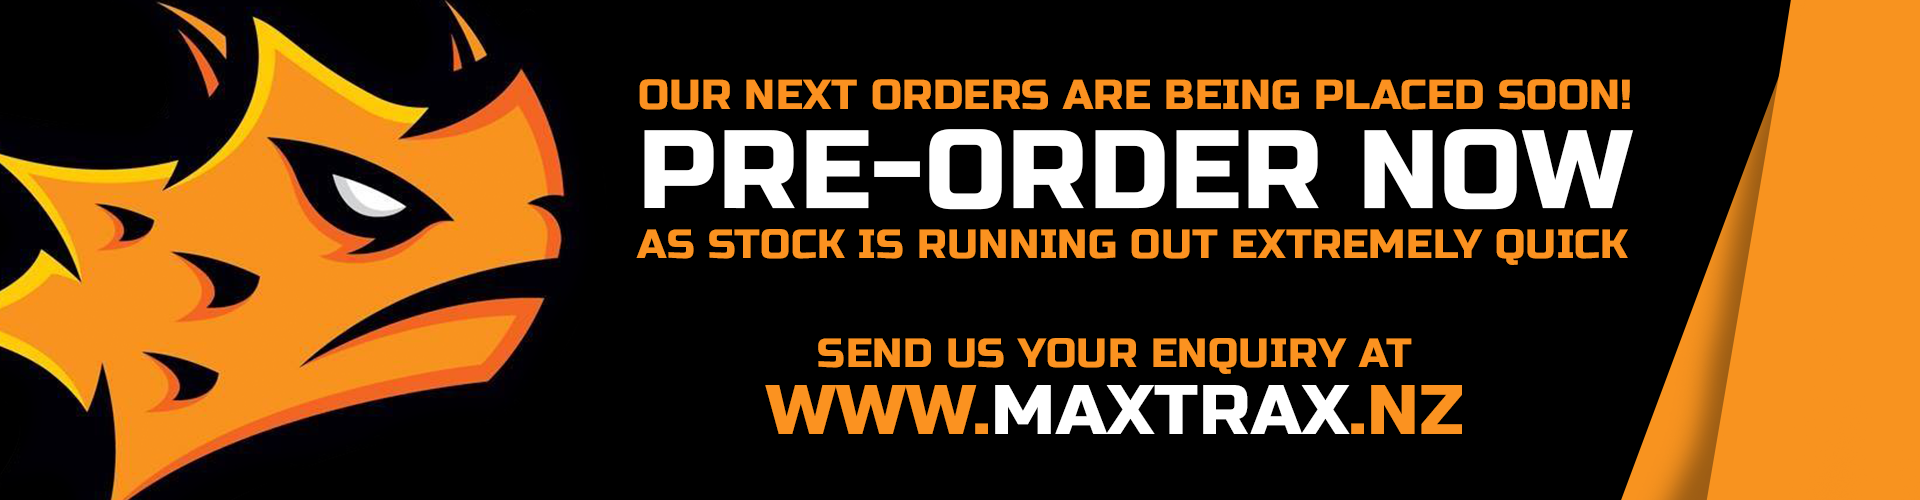 Stock-order-advert-banner.png